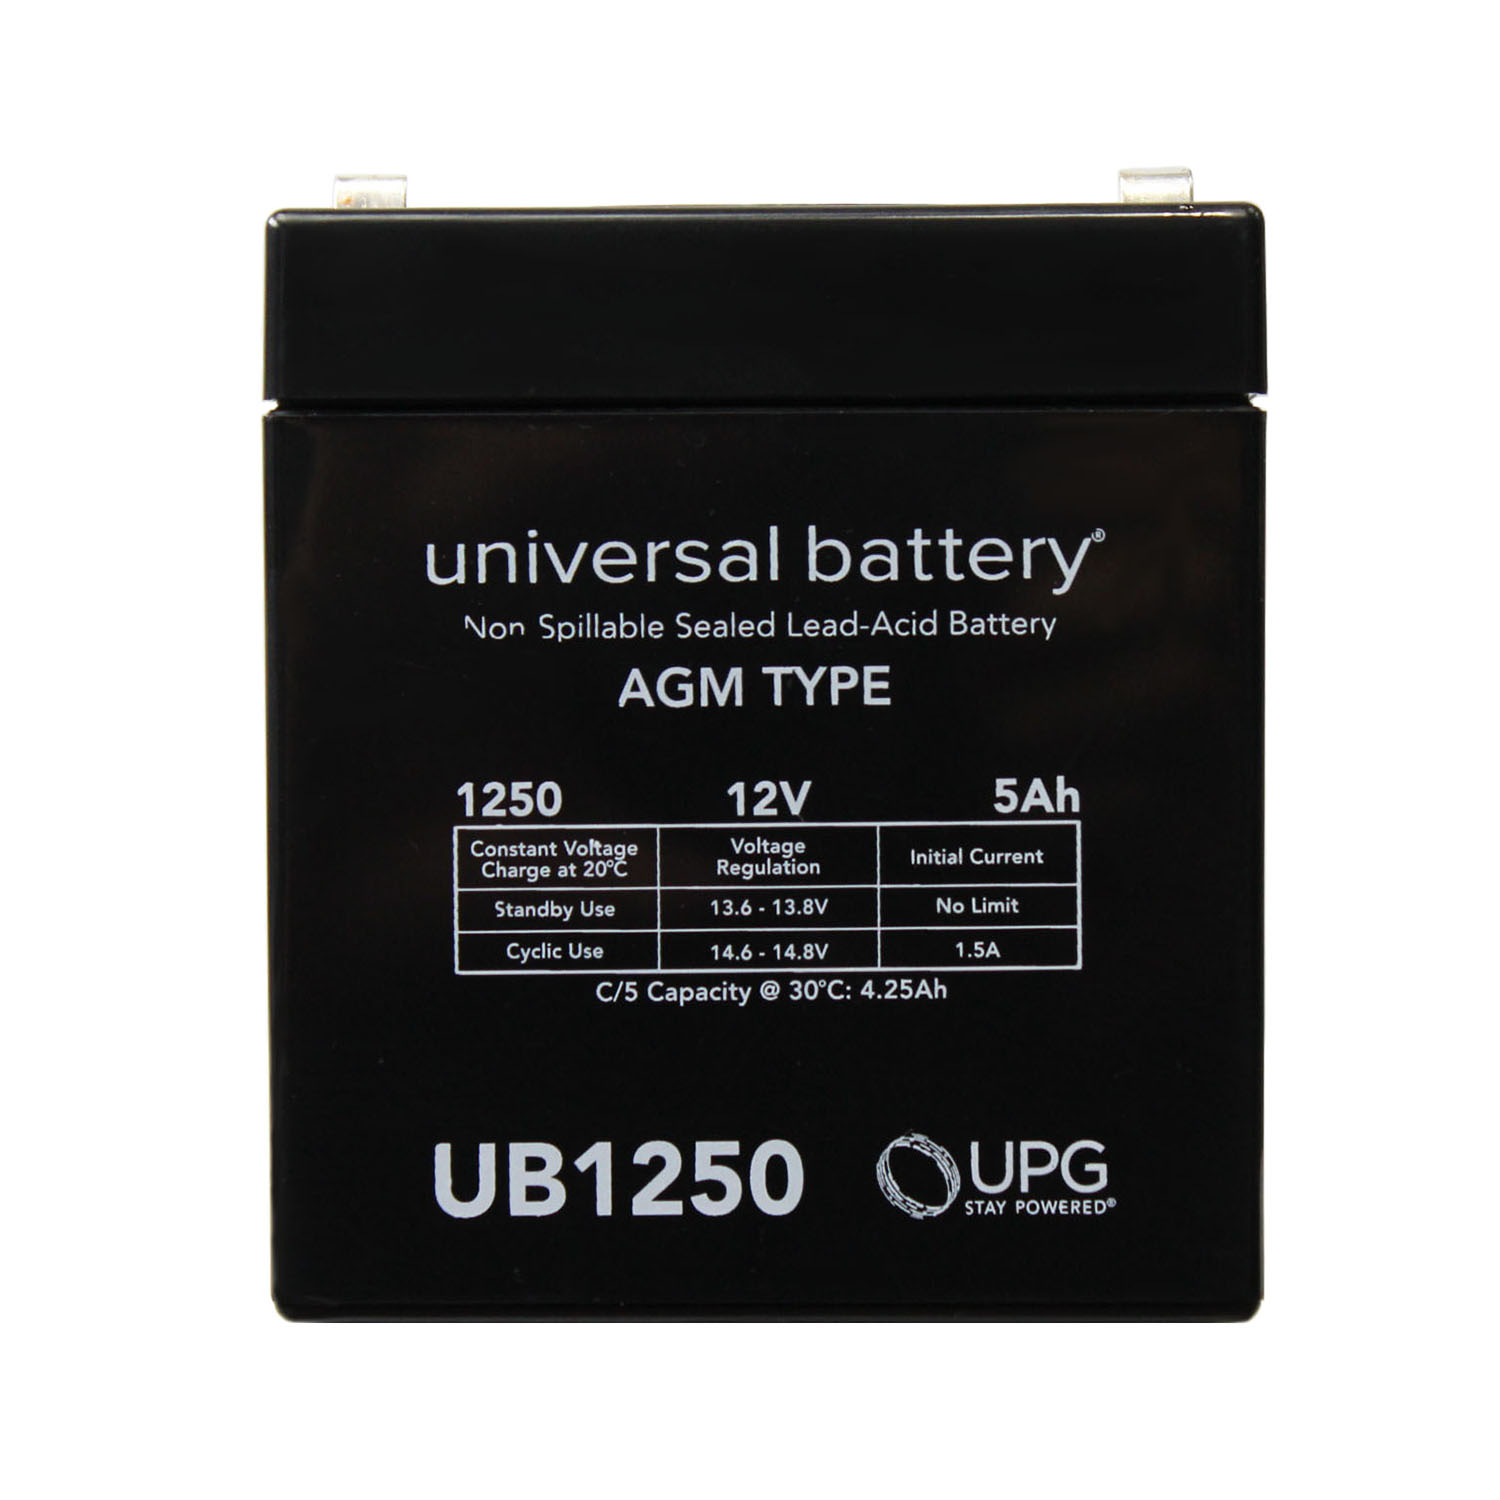 New 12V 5AH Battery for UB1250 D5741 Home Security Alarm w/FREE SHIPPING!